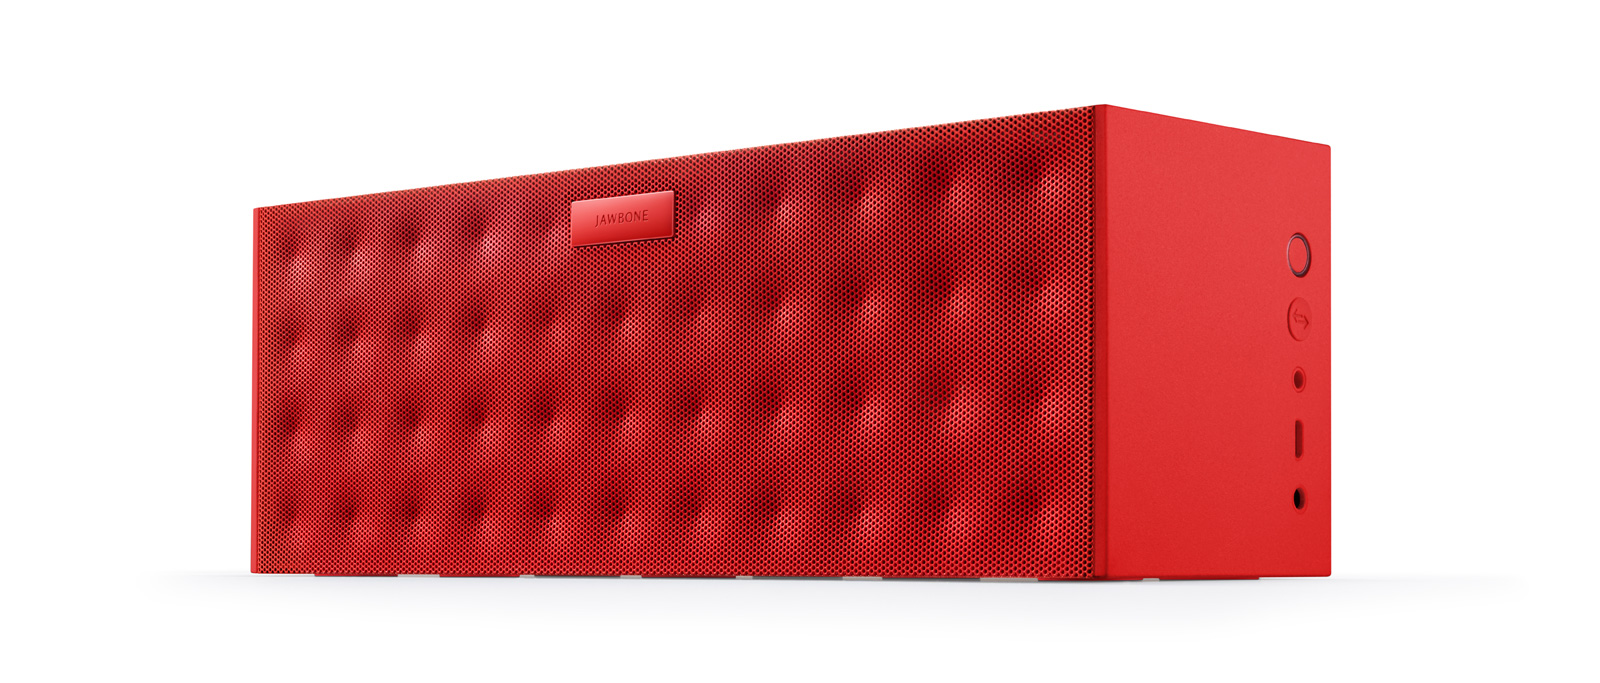 Intel media's retail efforts are driven by the dsame guy who brought Jawbone's Jambox to Best Buy and Walmart.